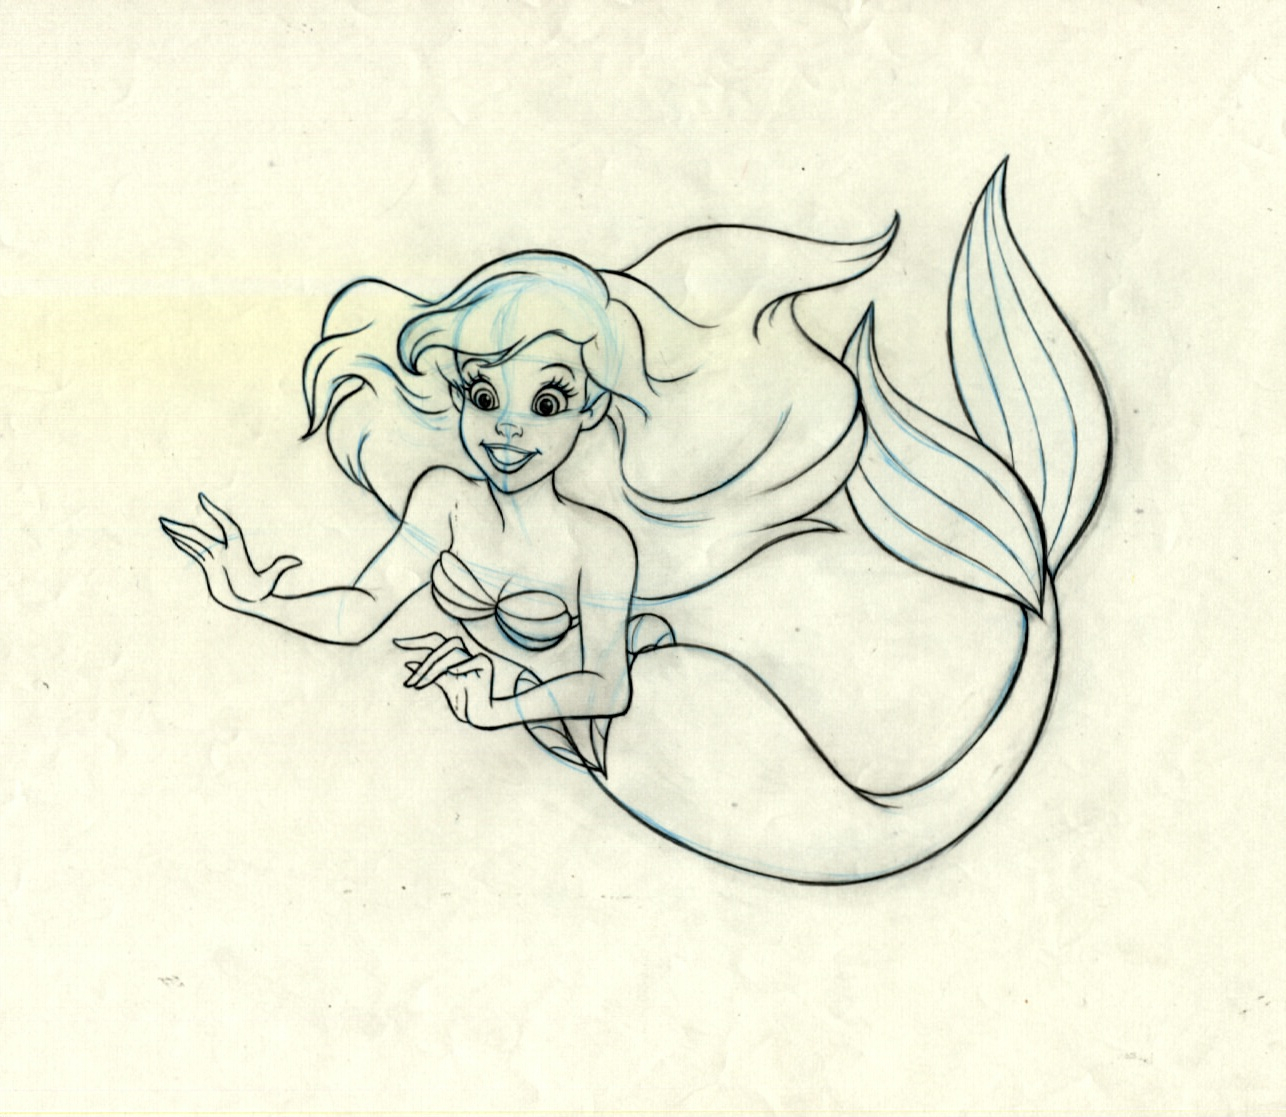 1286x1117 The Little Mermaid Drawings Ariel The Little Mermaid Original